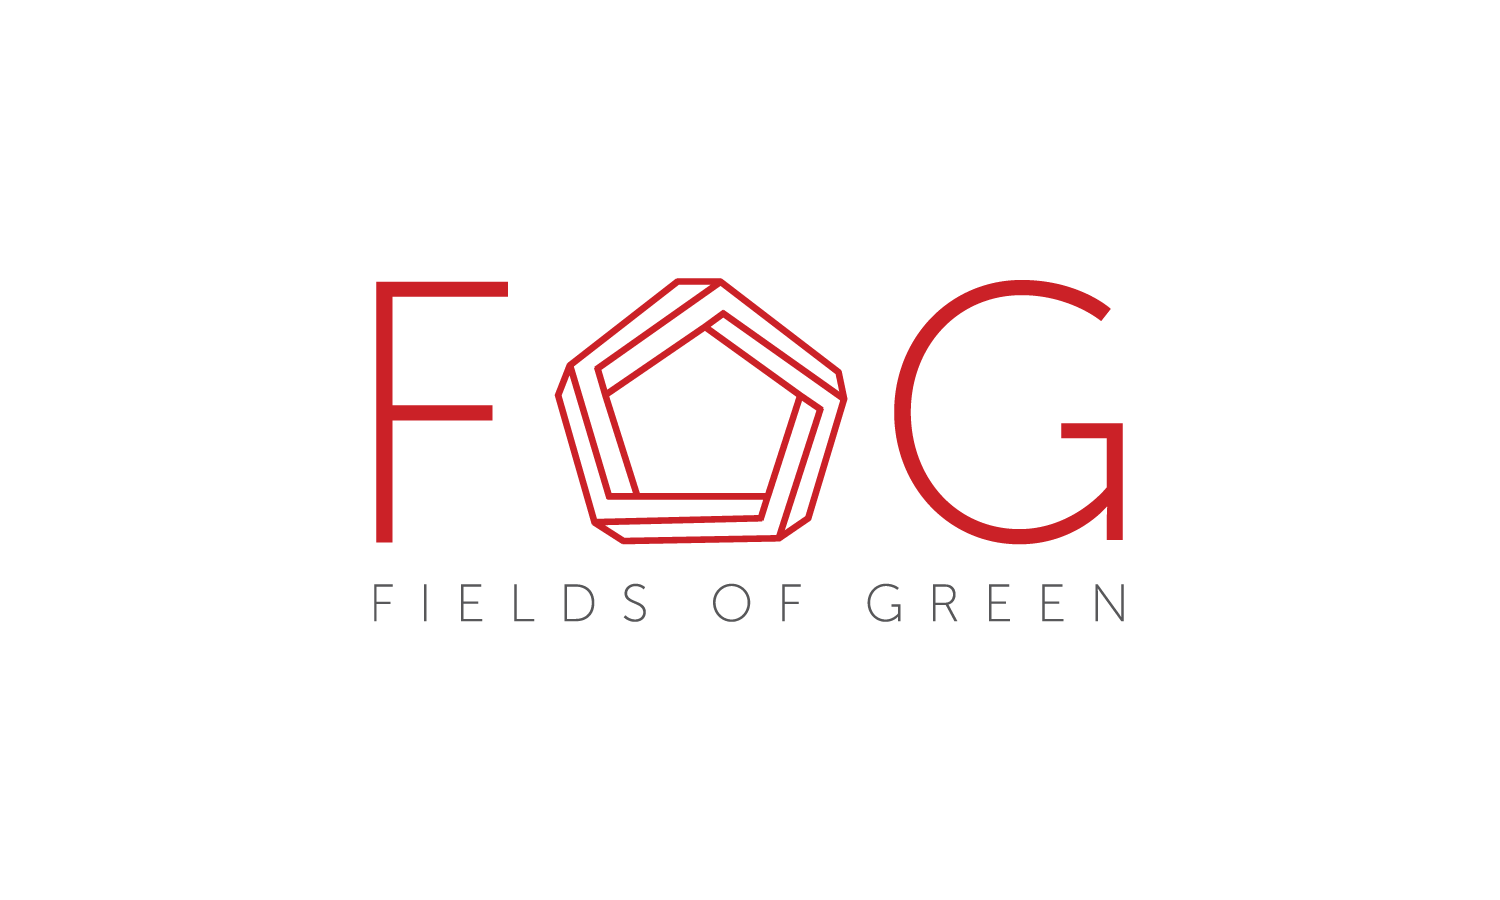 Logo Design by Emelie Halston - Entry No. 71 in the Logo Design Contest Psych-Rock Band FIELDS OF GREEN Logo Design.